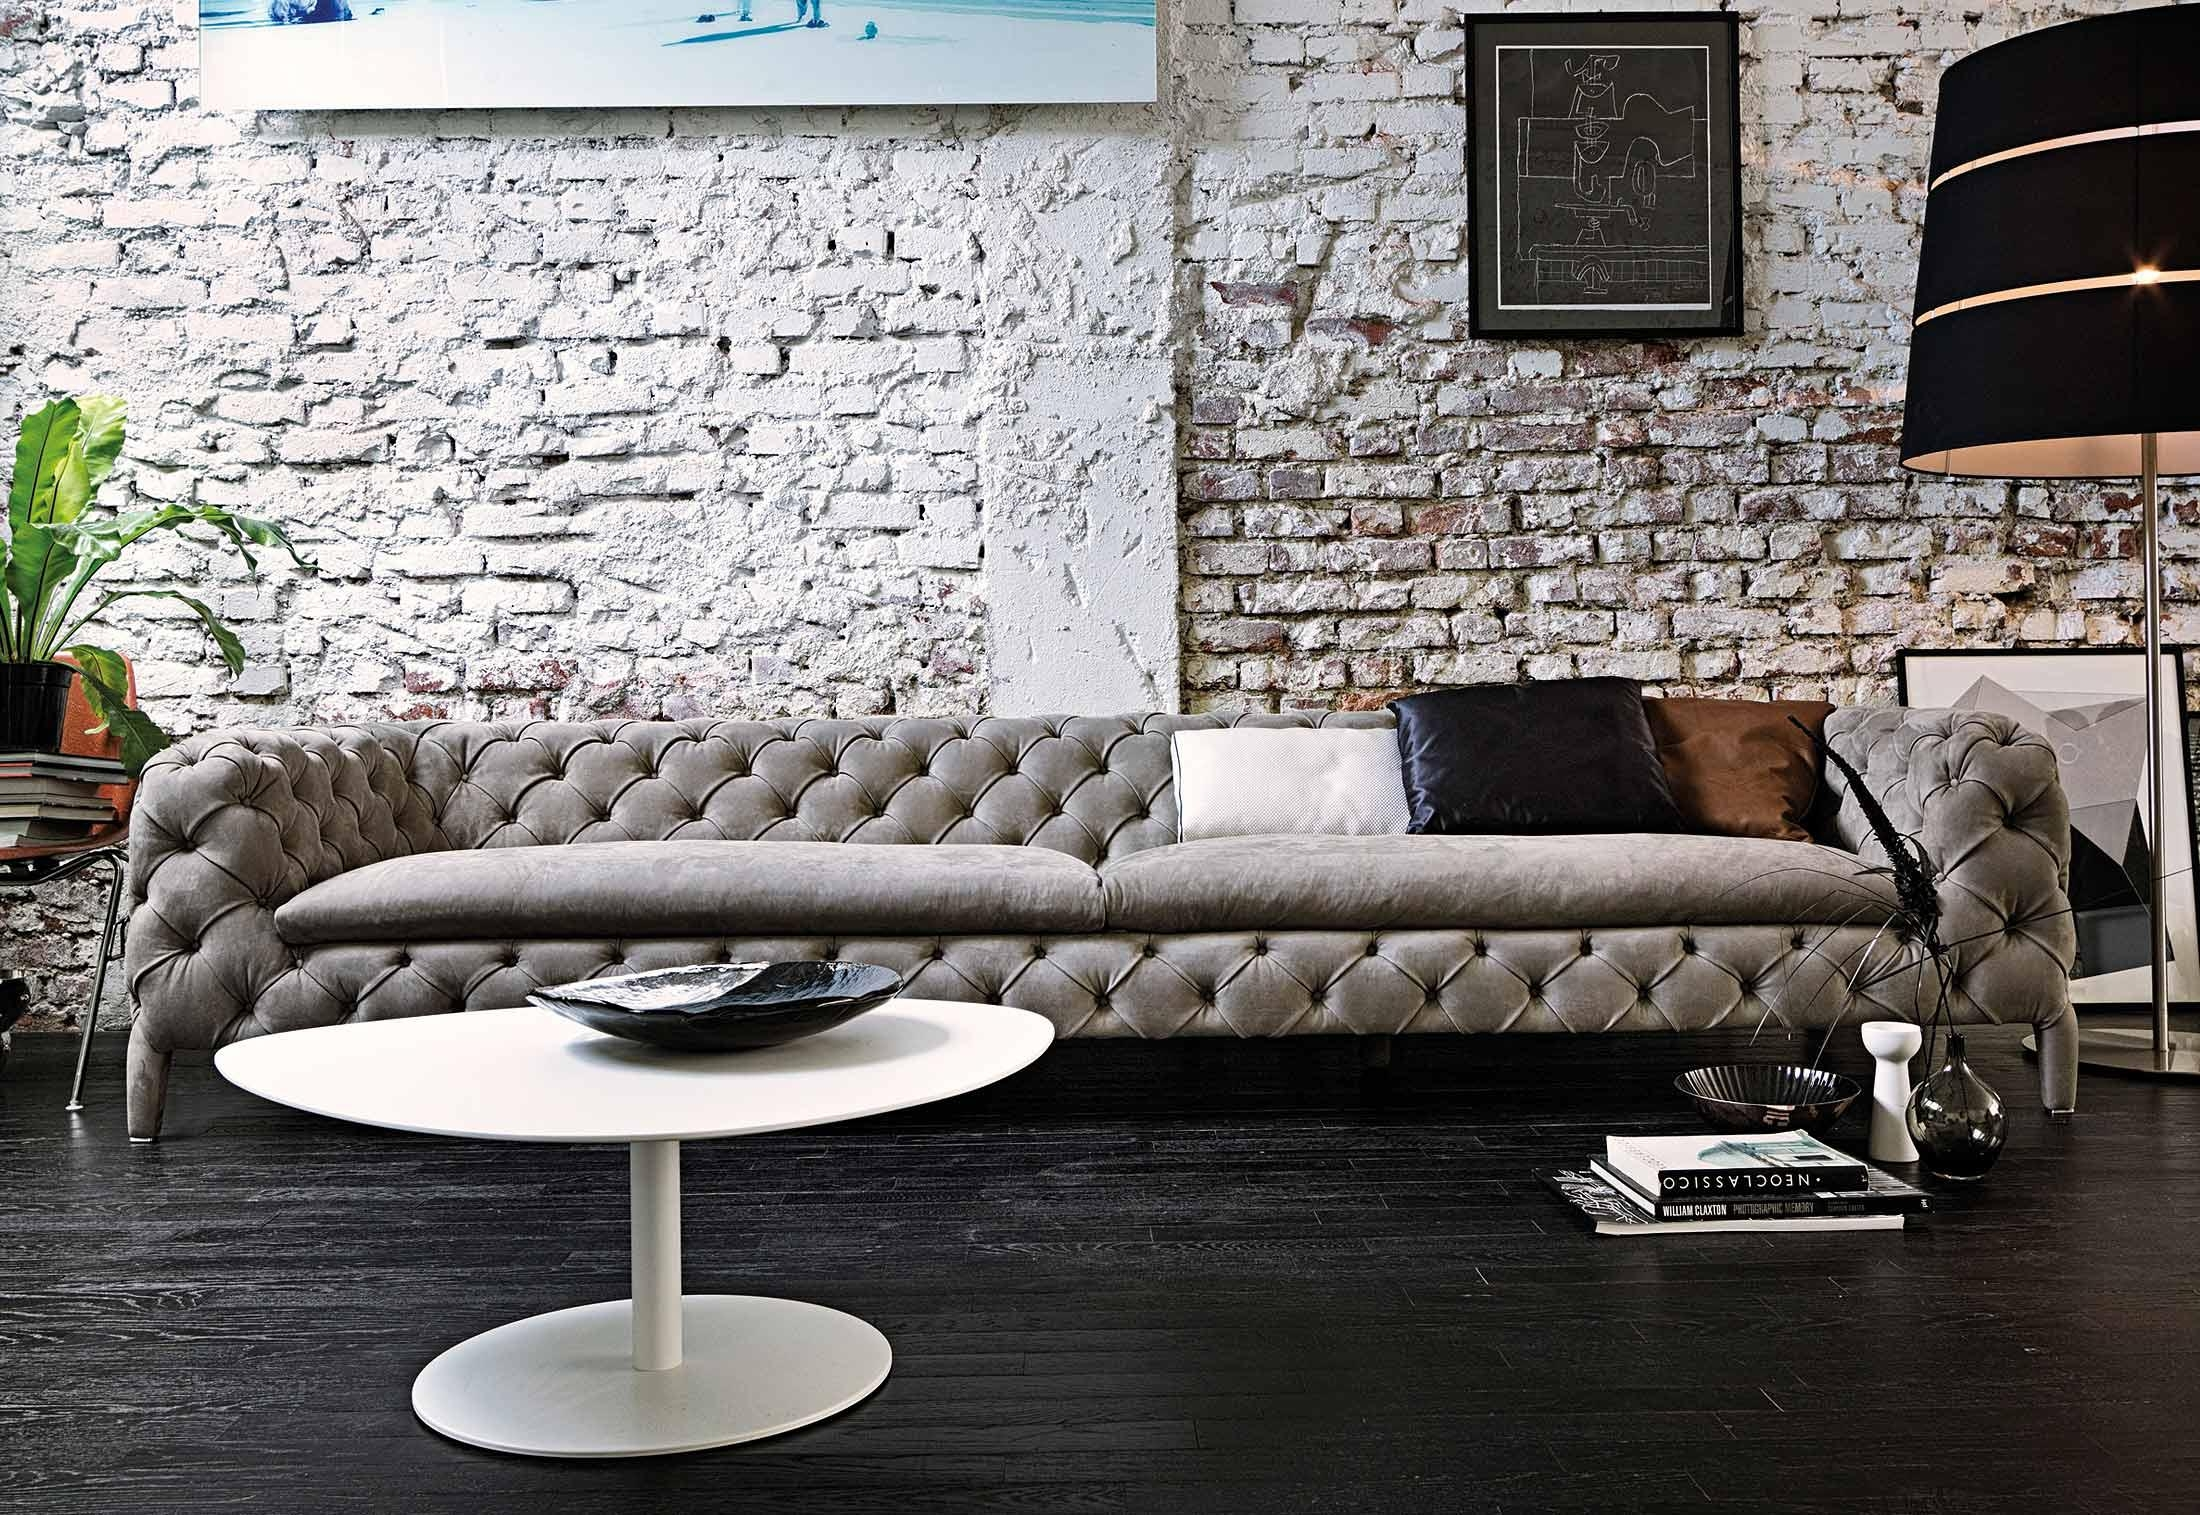 Windsor Sofaarketipo | Stylepark With Regard To Windsor Sofas (Image 20 of 20)